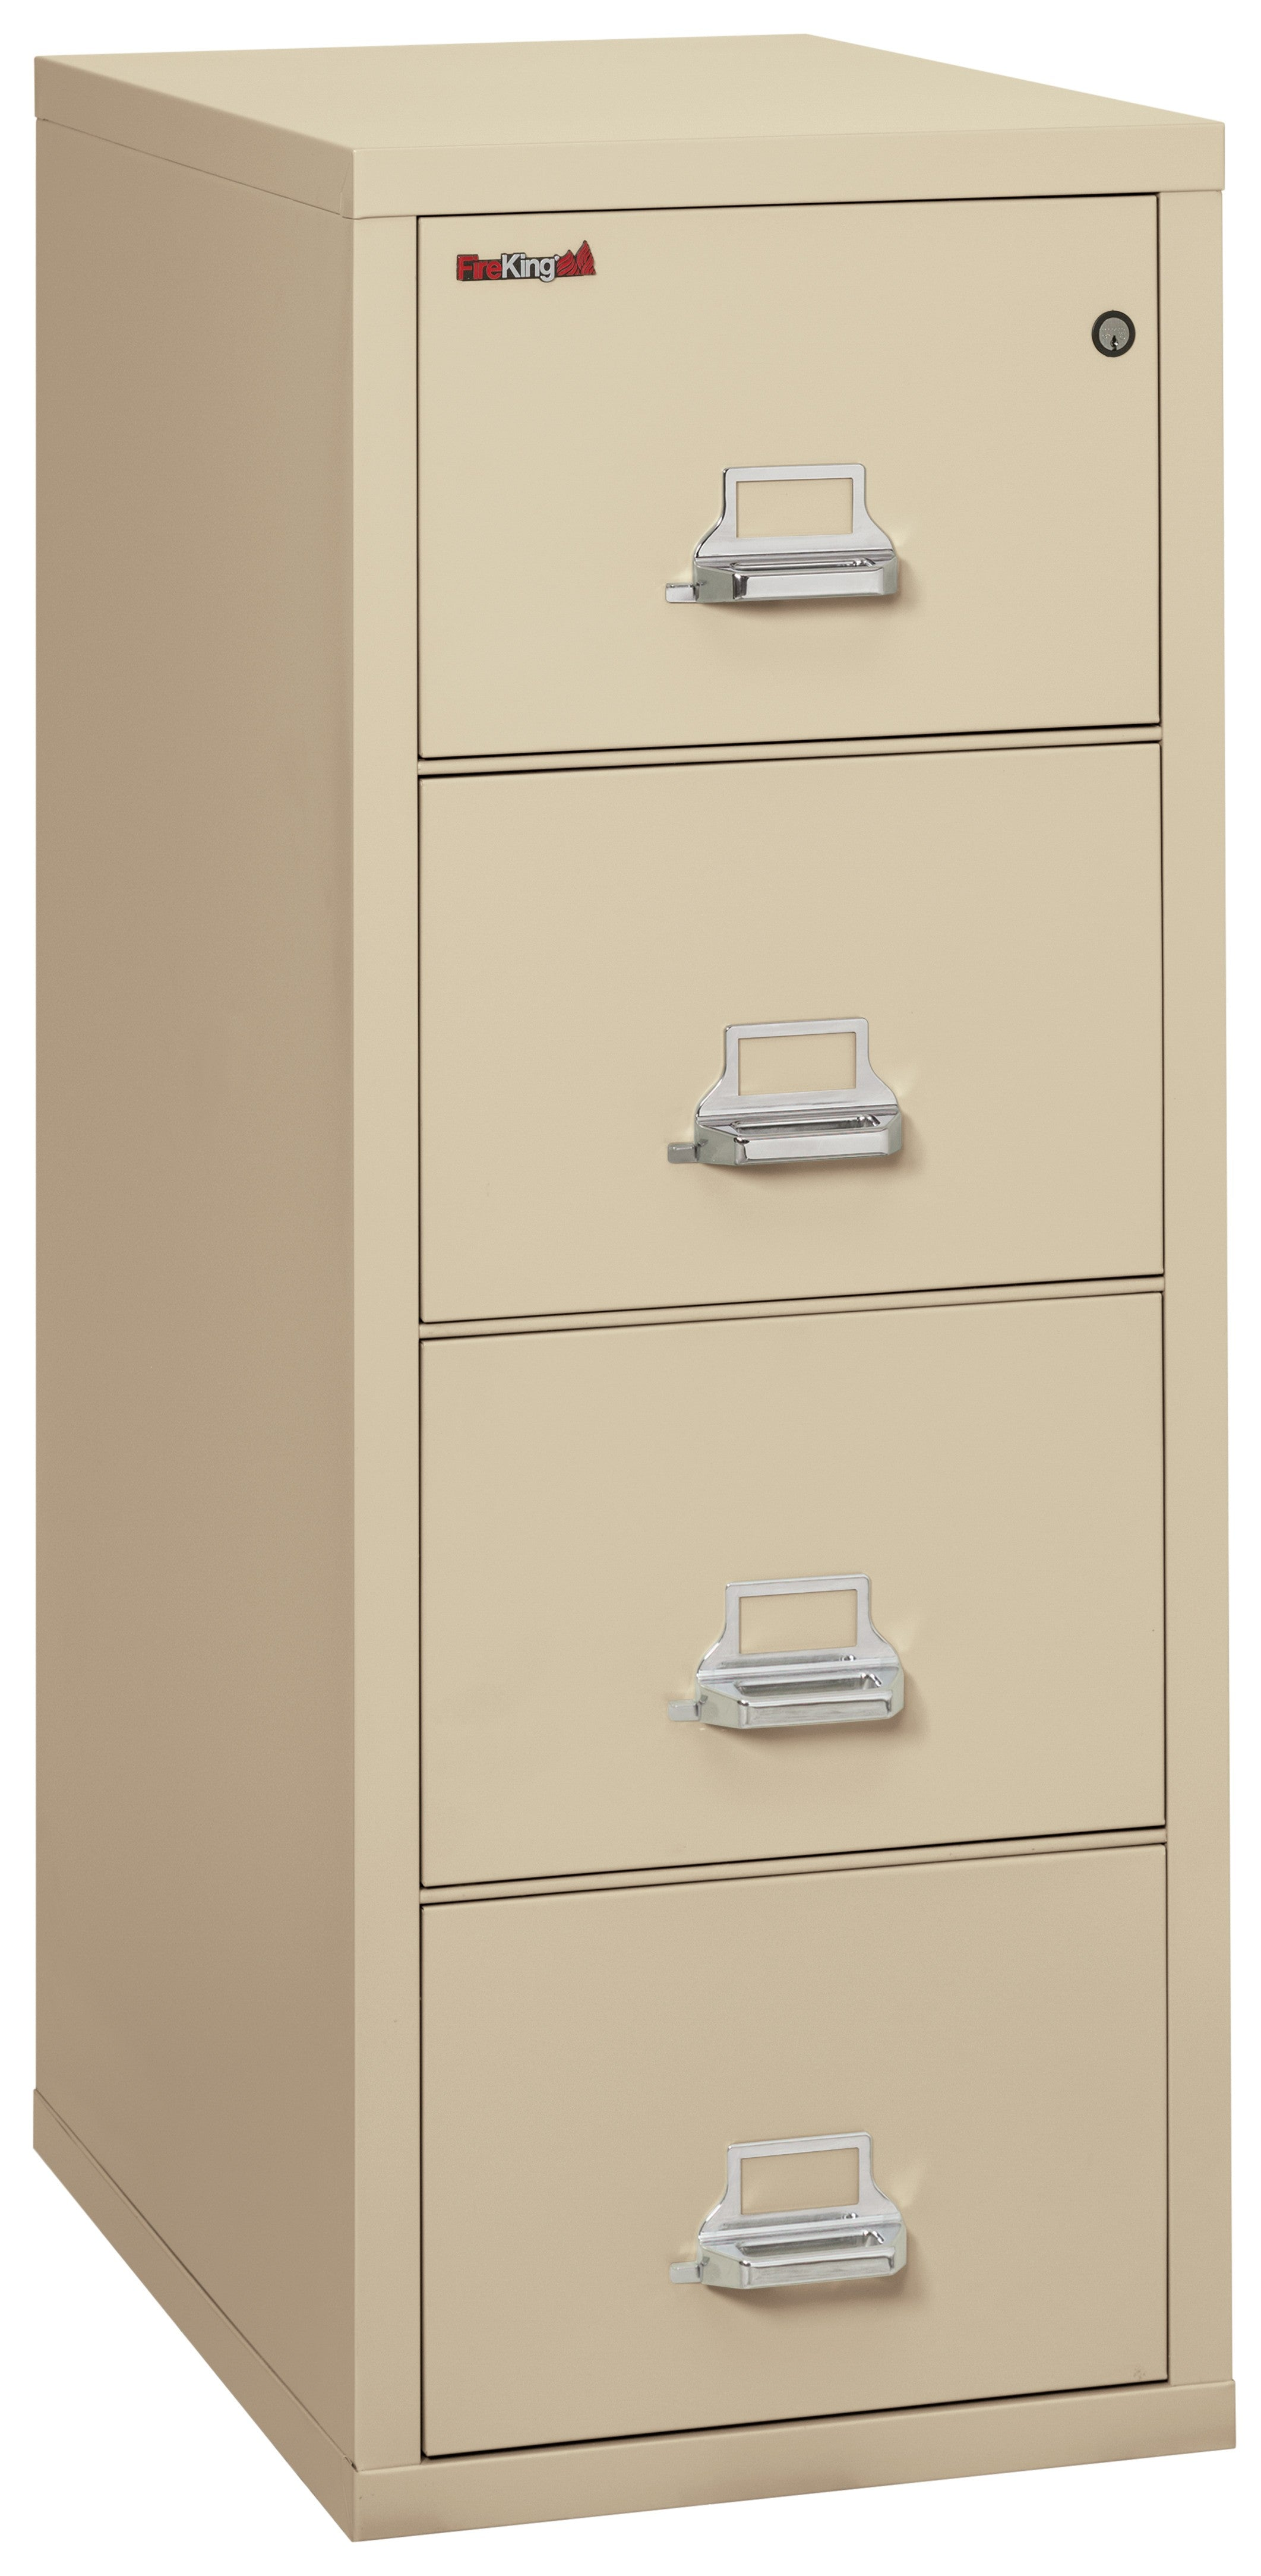 "Fireking 4 Drawer Letter 31"" D Classic Vertical File Cabinet"